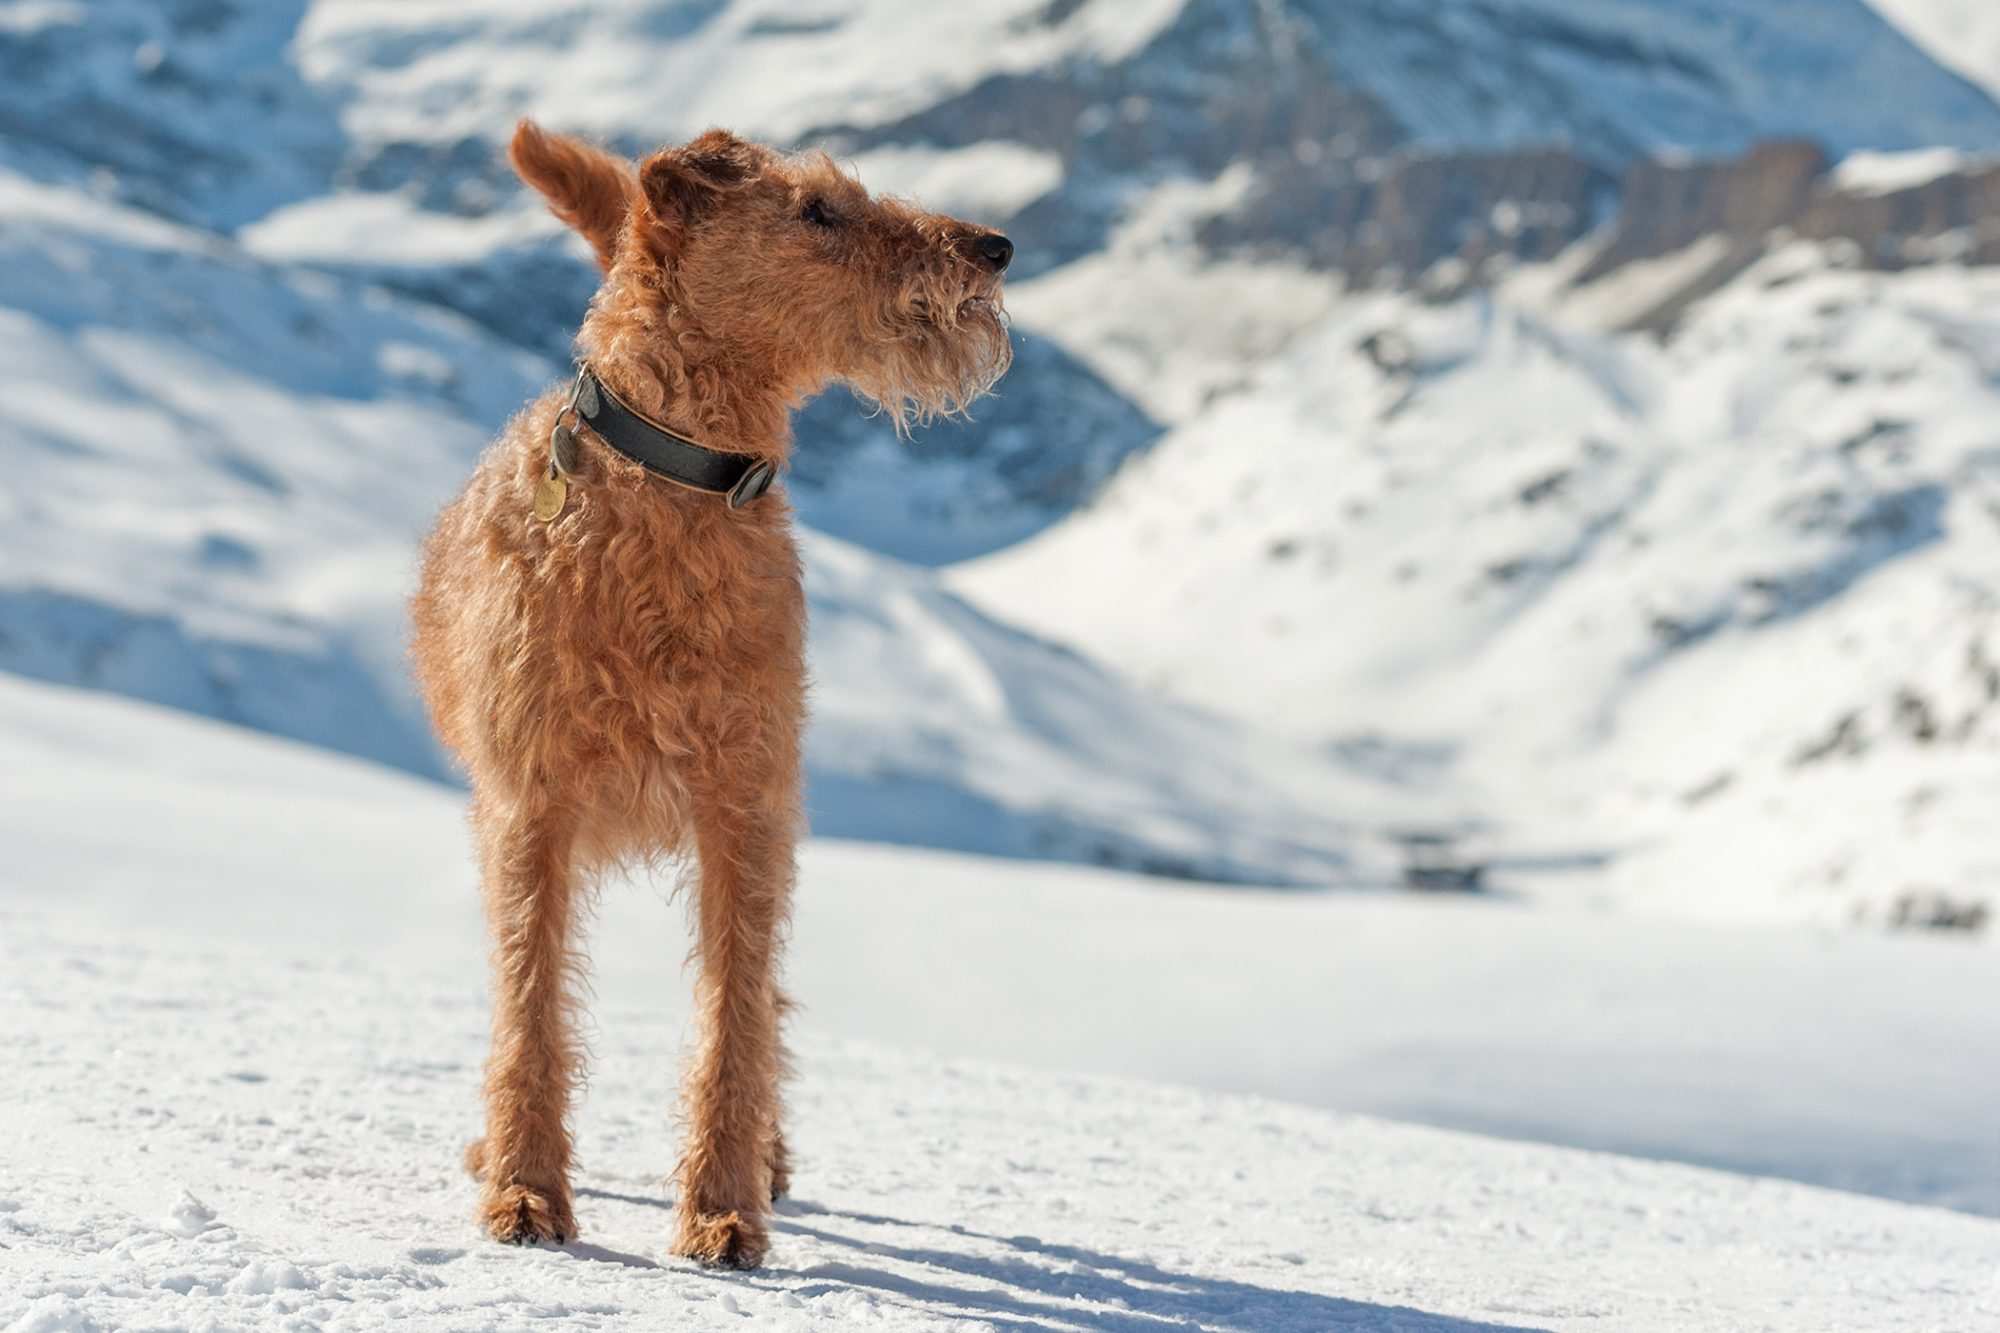 dog standing on snowy mountain